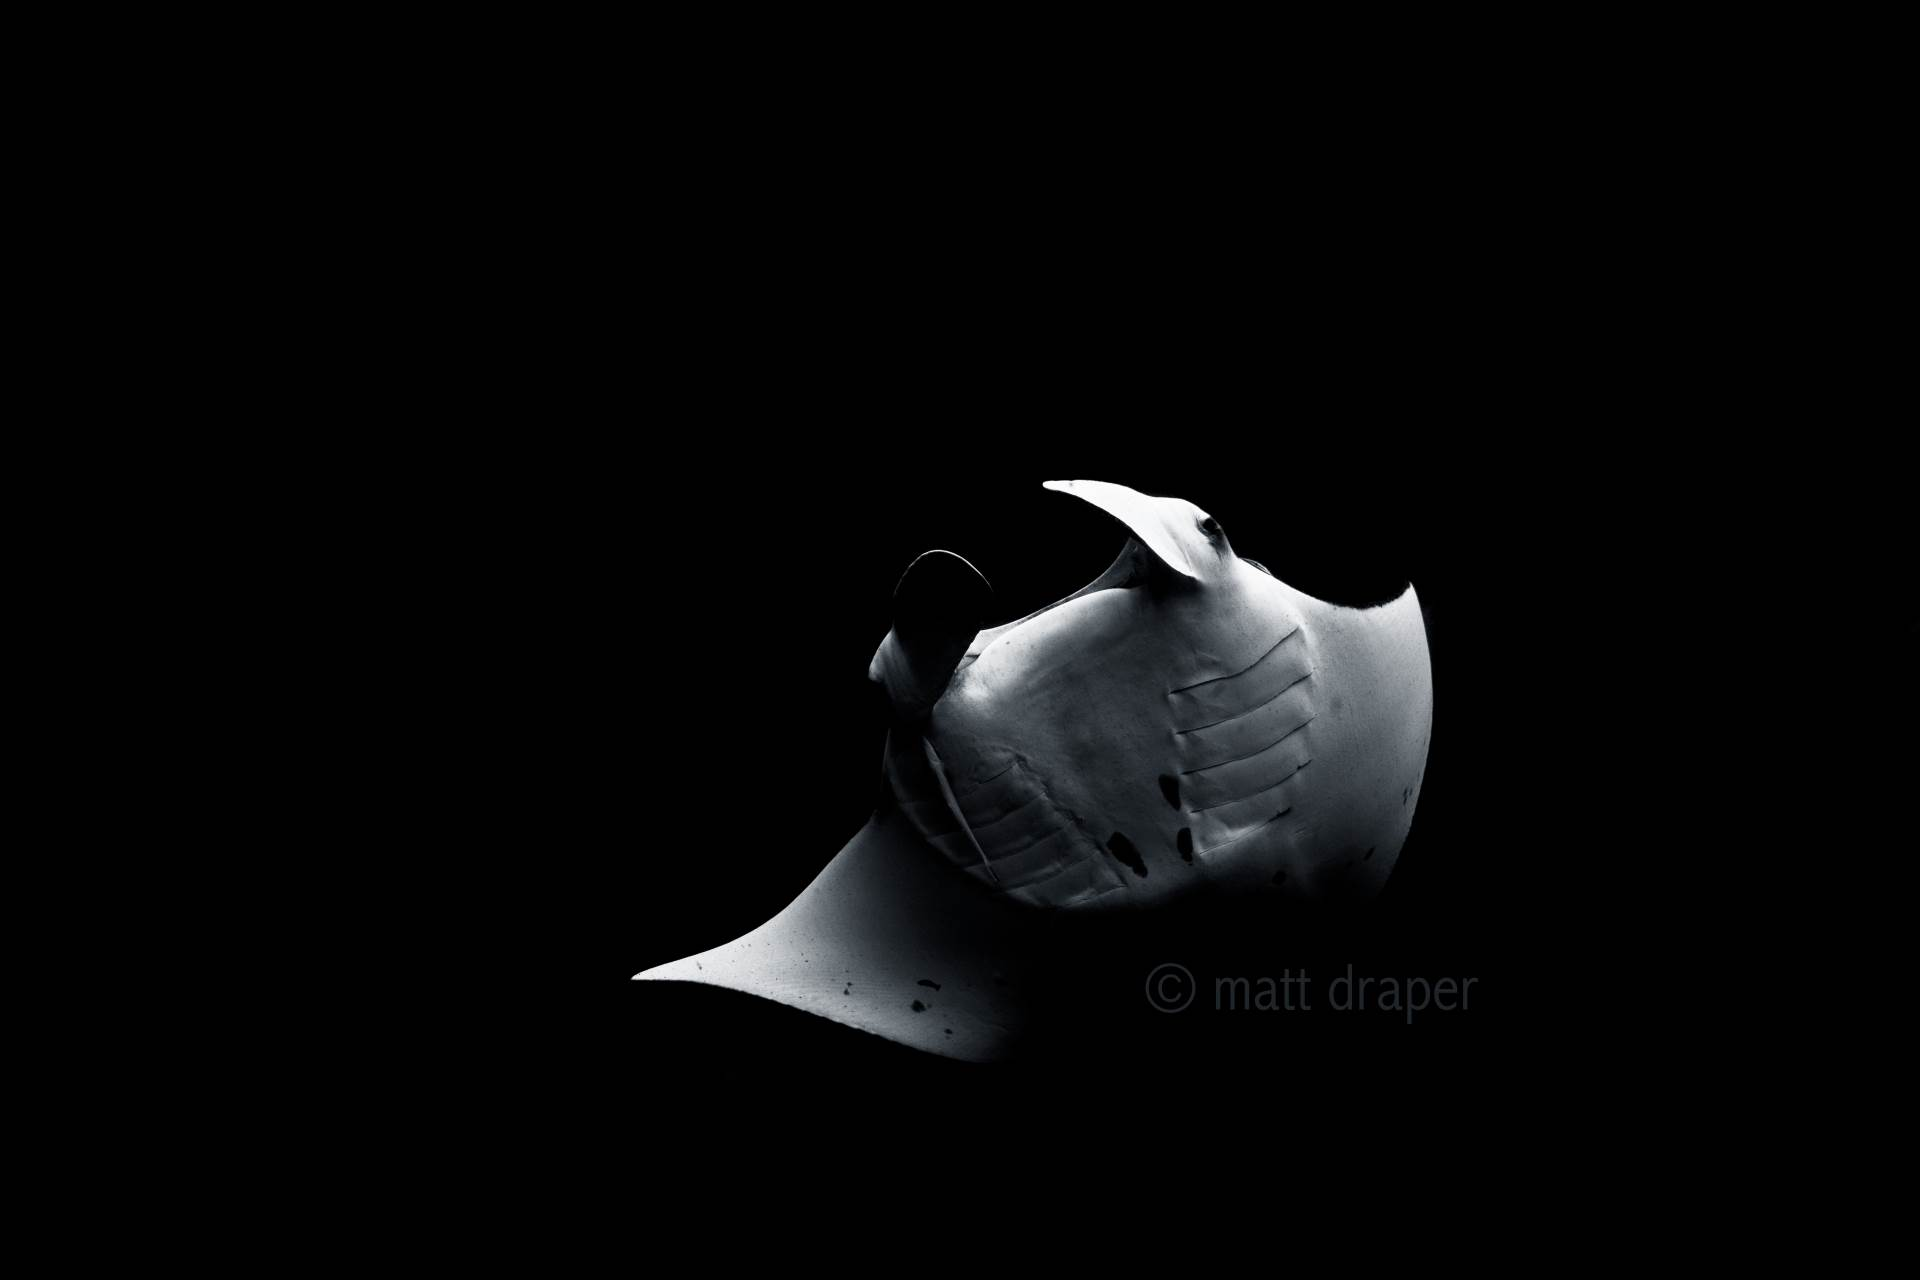 An incredible interaction with this male Manta ray today at my local dive site of Julian Rocks, Byron Bay. I spent close to an hour free diving with this amazing being in about 10m of water. I captured this image under natural light then removed all colour. www.mattdraperphotography.com